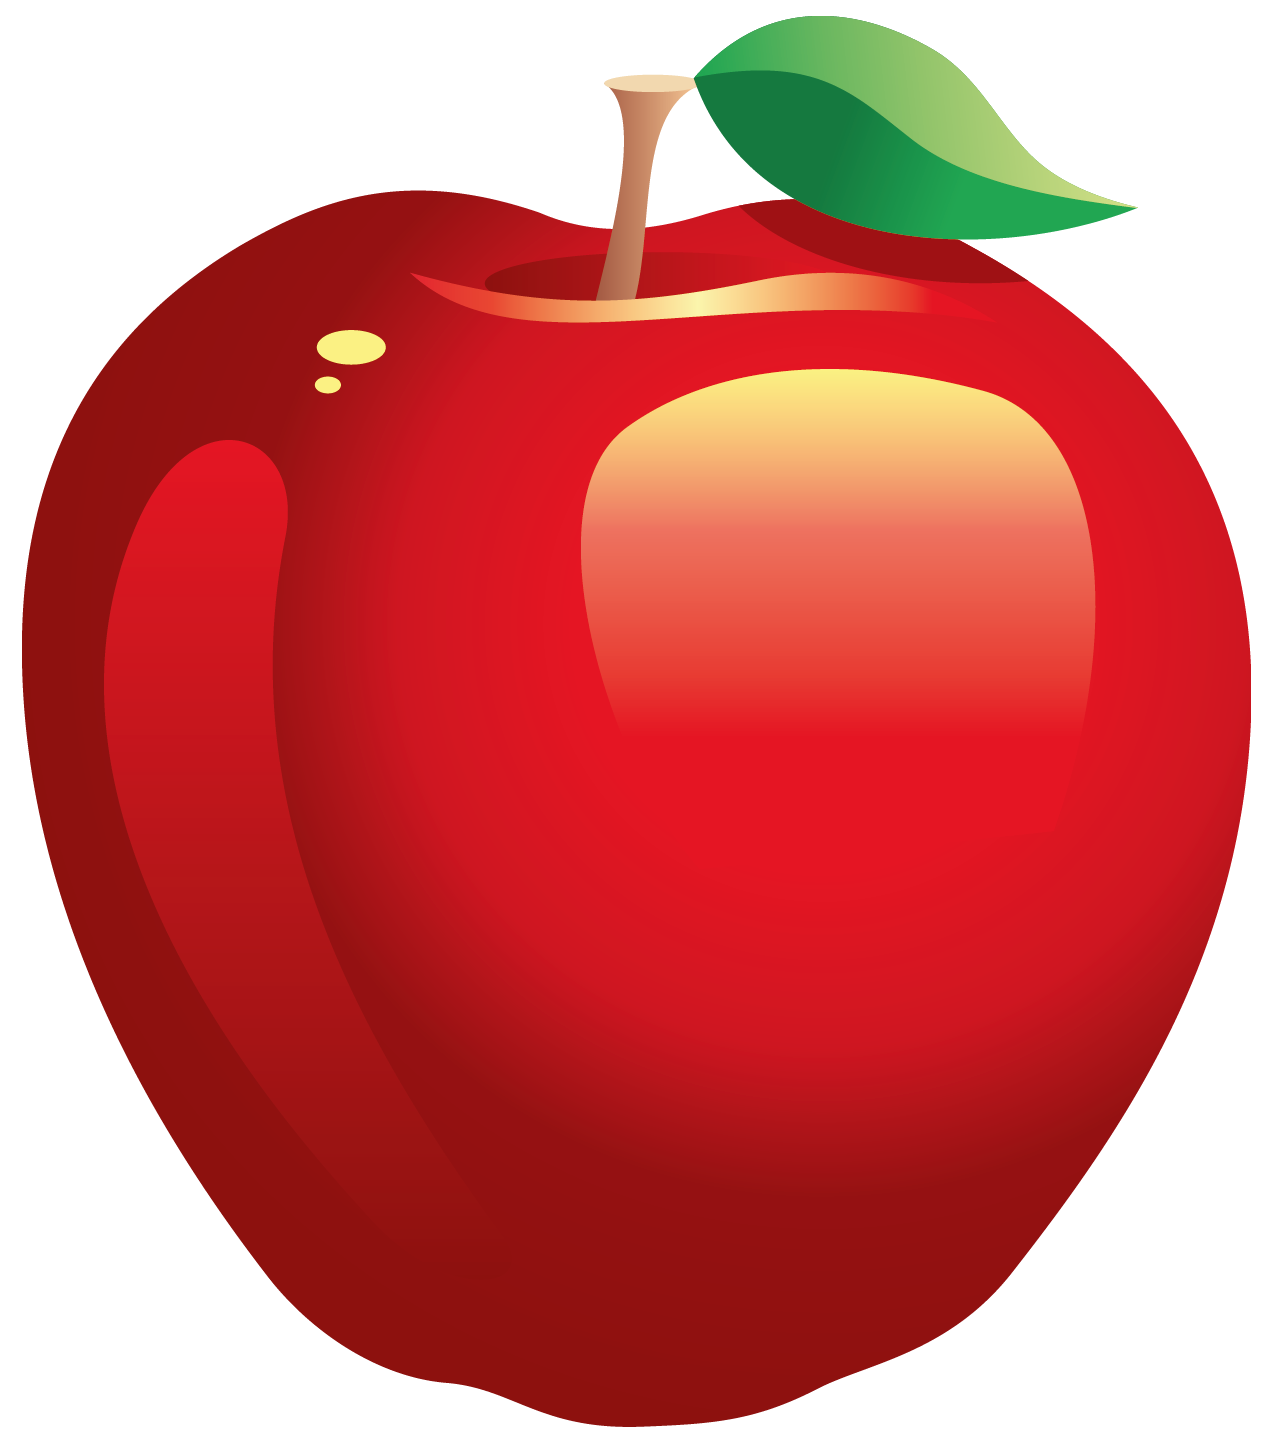 Apple clipart transparent background svg freeuse download Large Painted Red Apple PNG Clipart | Gallery Yopriceville - High ... svg freeuse download